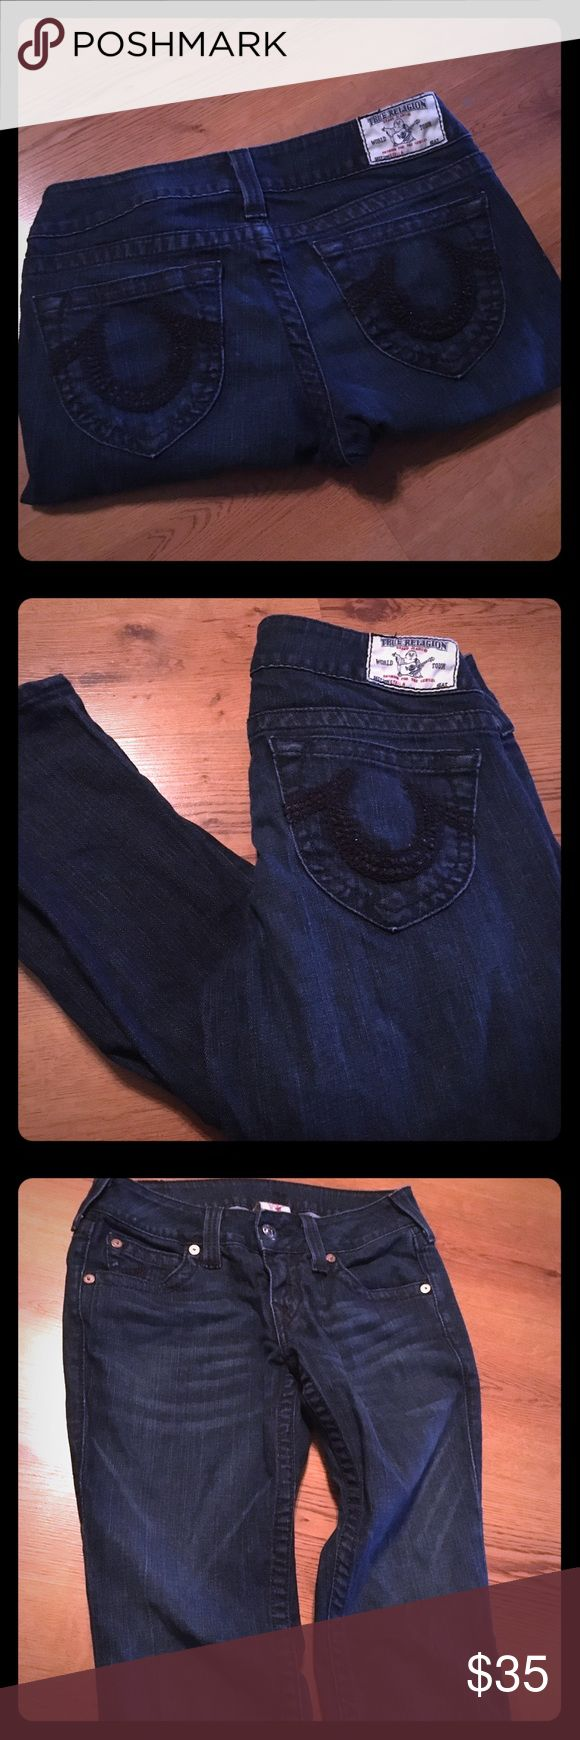 """True Religion Mid-rise Super Skinny Women's Jeans Halle Mid Rise Super Skinny Jean for Women are a chic style on the city streets or in the office.  Womens Super Skinny Leg  Zip fly with button closure 8.75"""" Rise 29"""" Inseam 10"""" Leg opening 84% Cotton, 14% polyester, 2% spandex Color: Worn Vintage True Religion Jeans Skinny"""